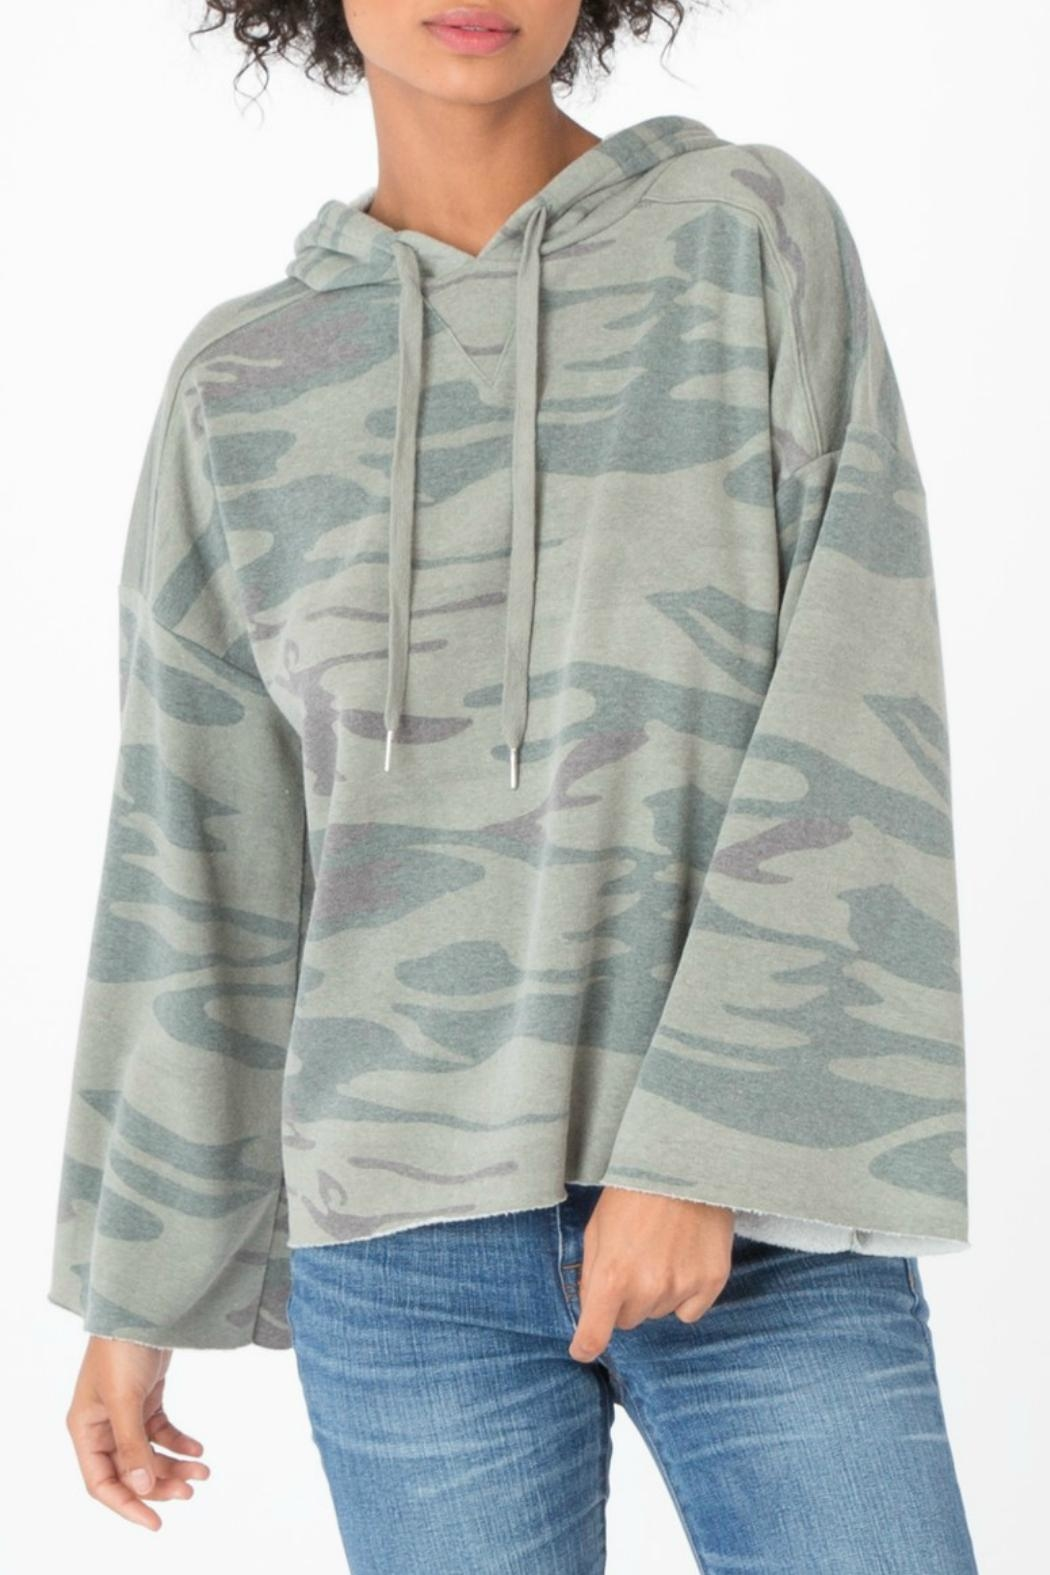 z supply Loft Camo Pullover Top - Front Cropped Image